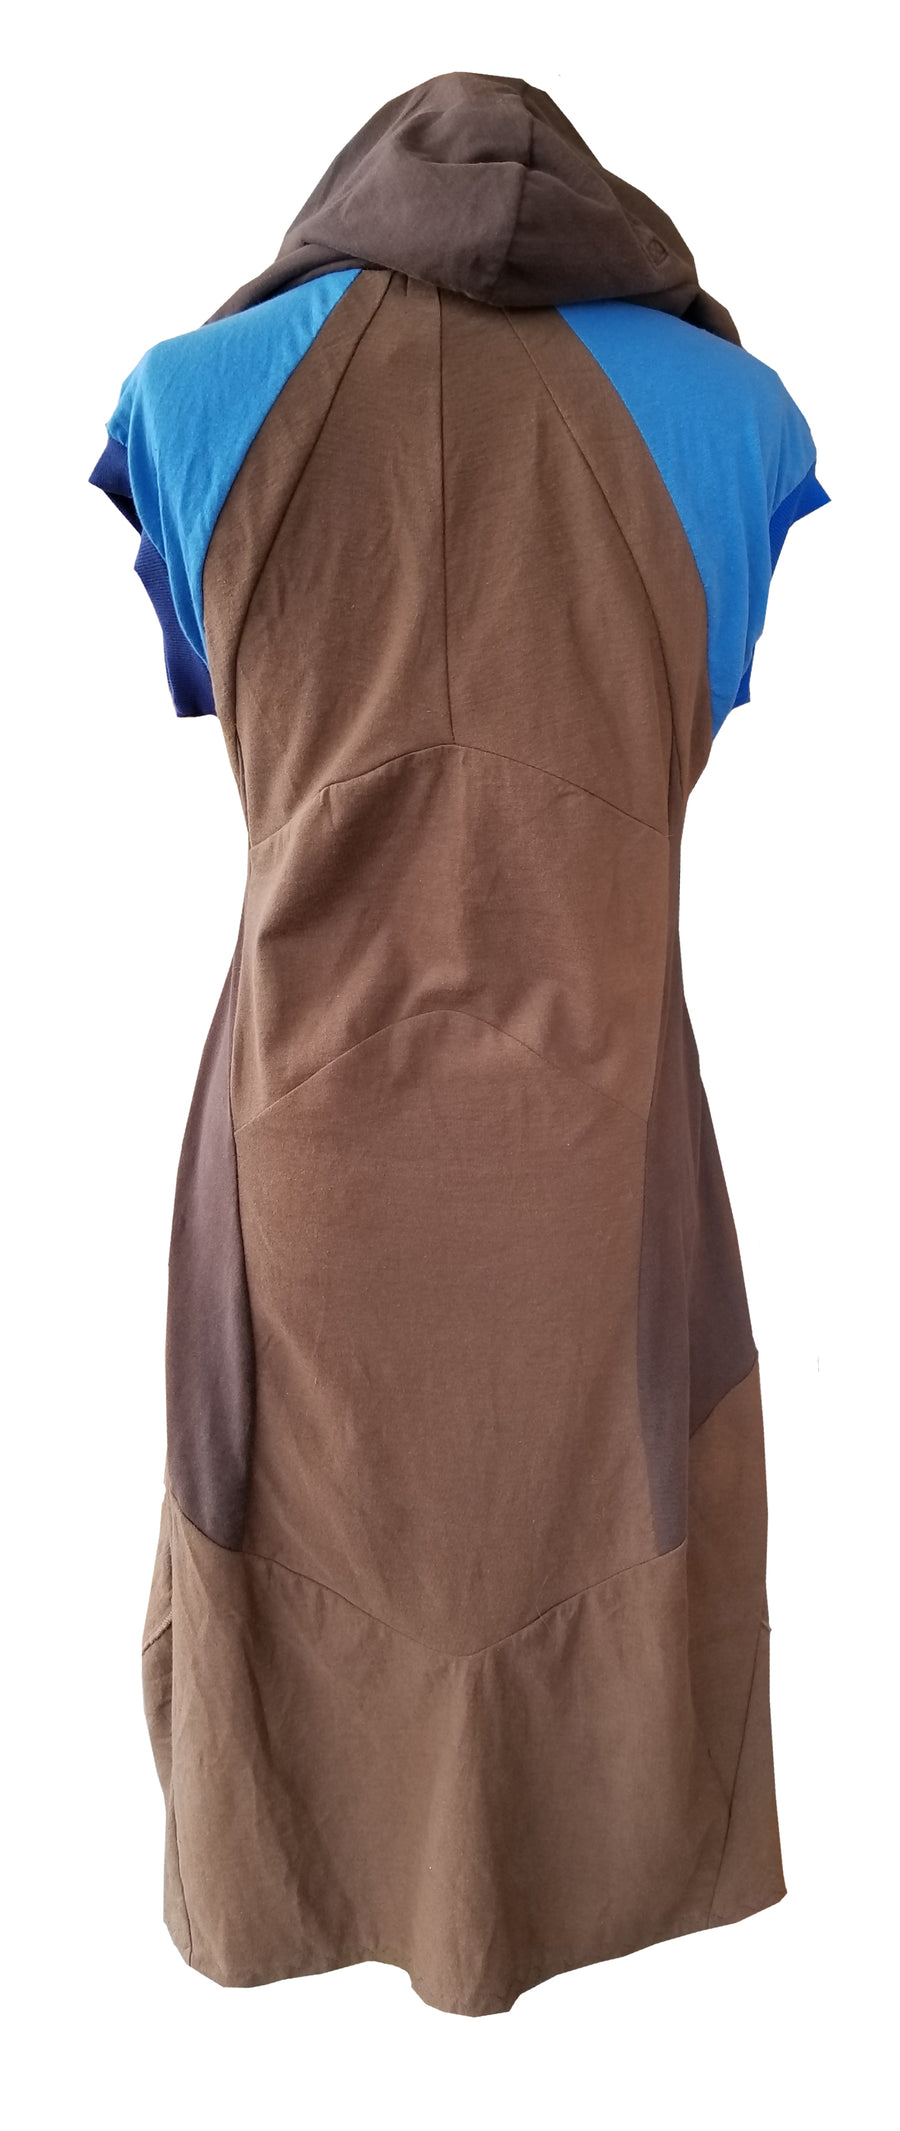 Release (tank dress) - Earthen Play Ground